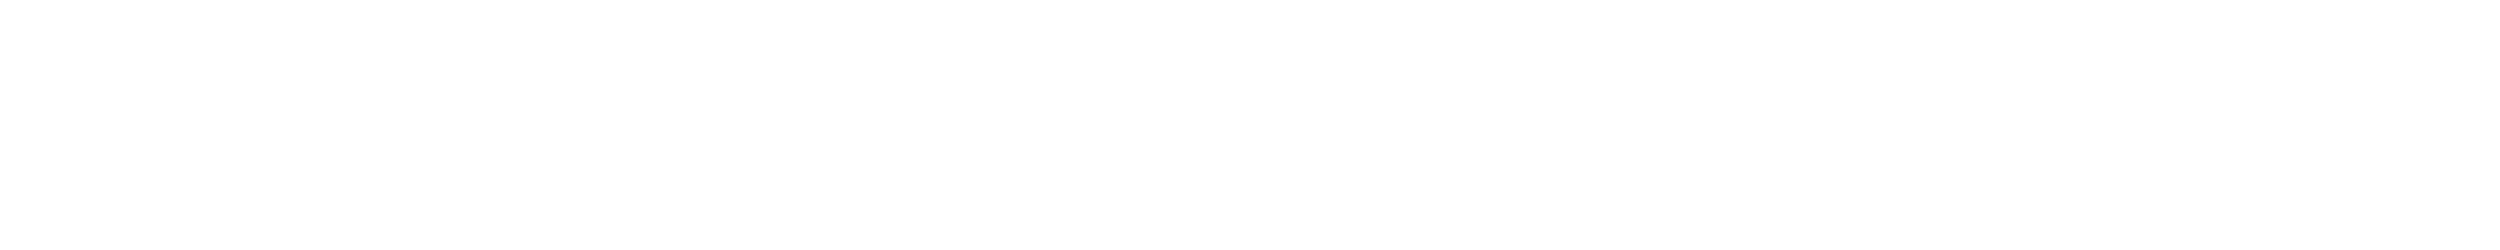 Remotestar_Consulting_Logo_Icon3.png